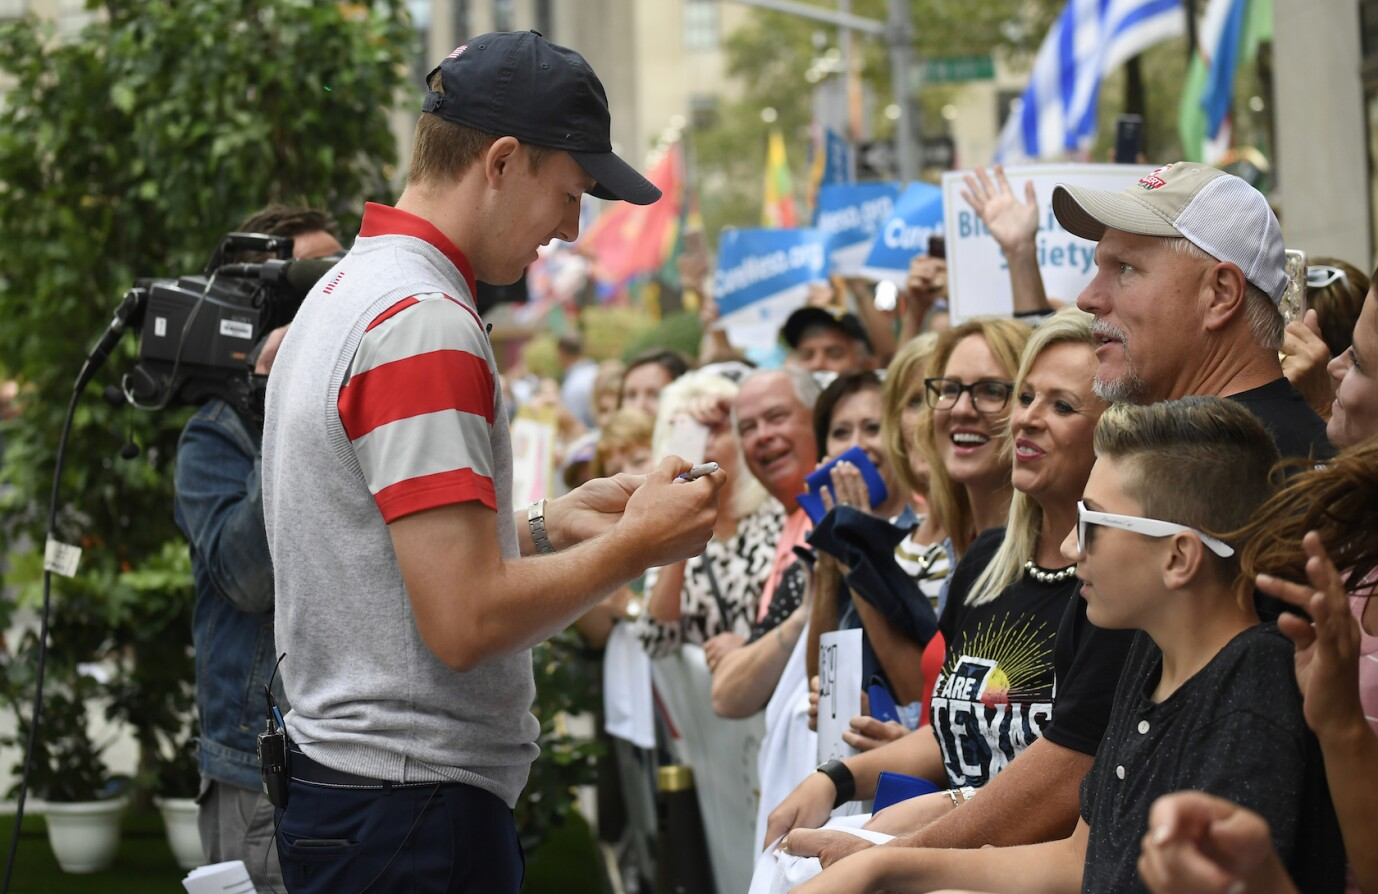 2017 Presidents Cup: The Today Show - Jordan greets fans